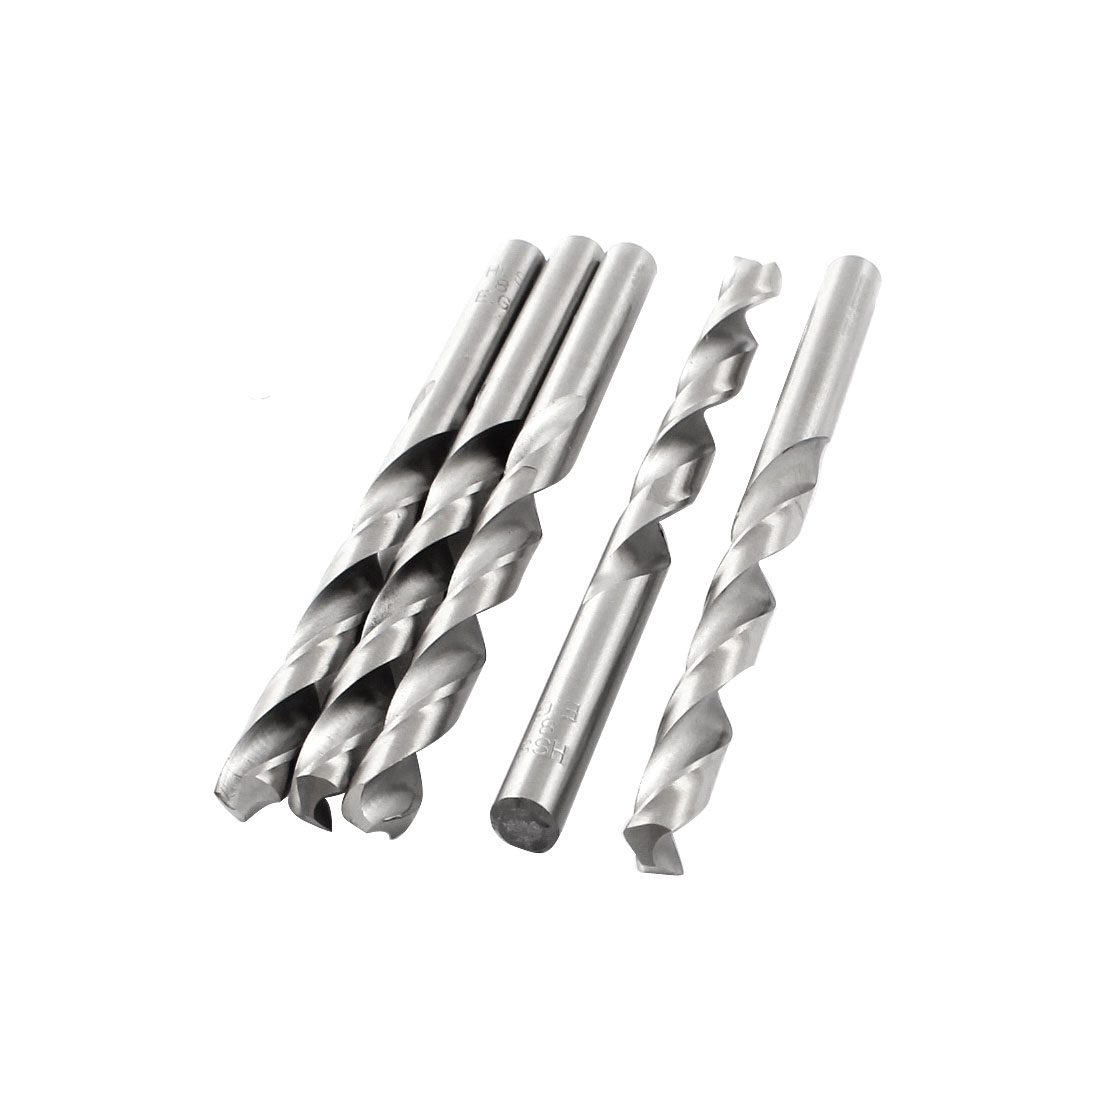 HSS Straight Shank 8mm Twist Head 115mm Long Drill Bit Silver Tone 5PCS